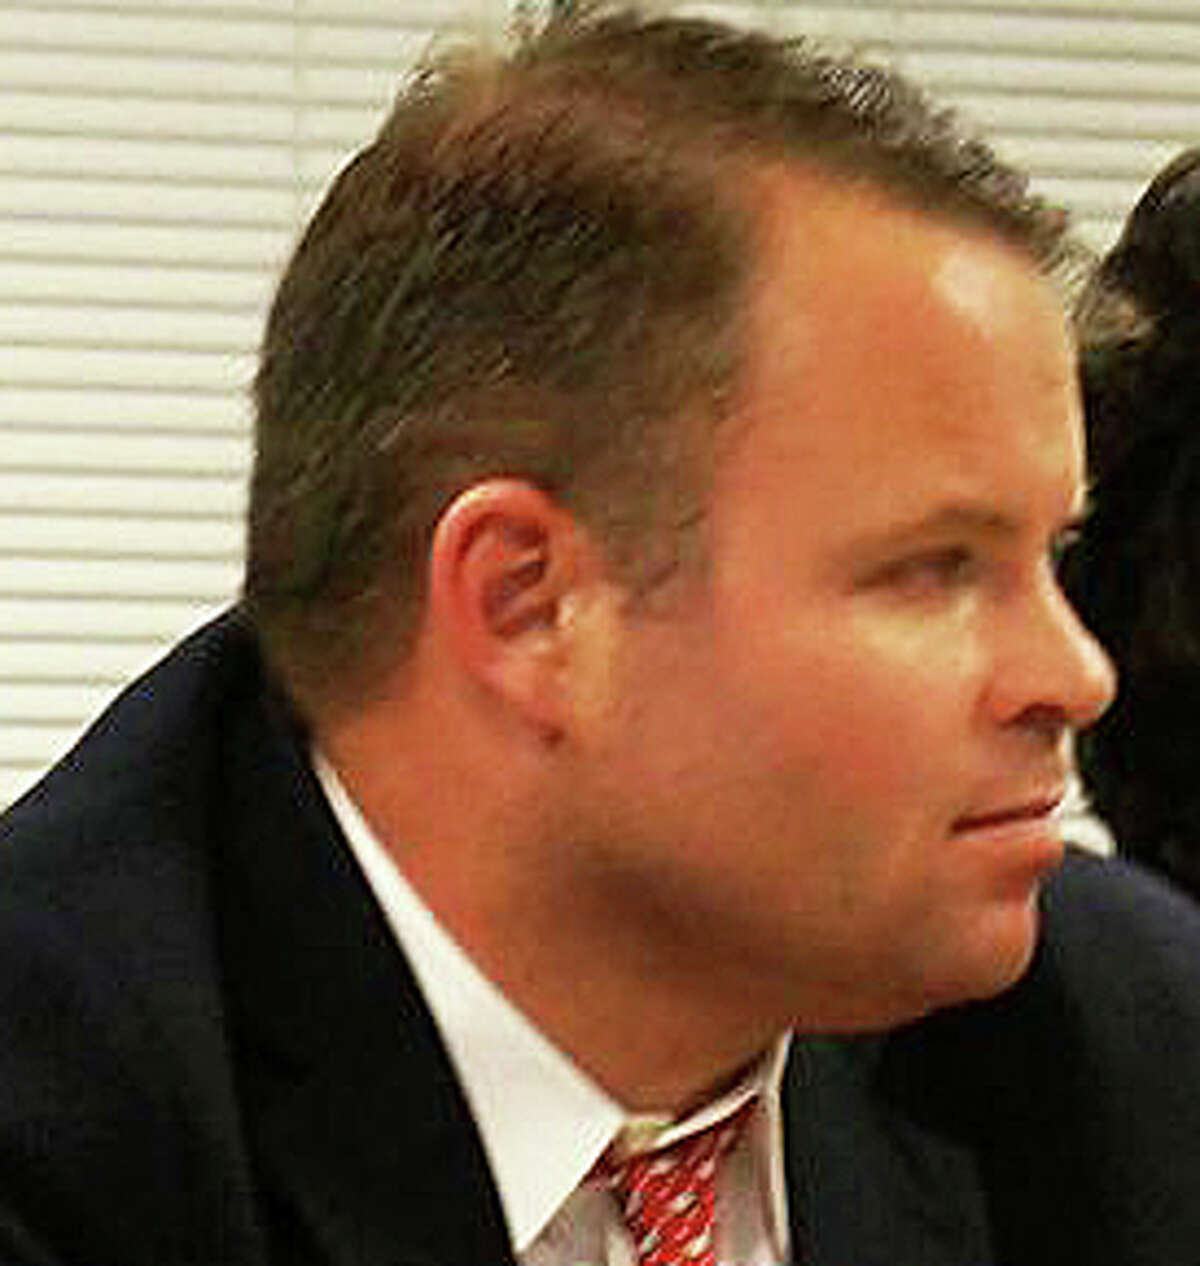 Chris Tymniak, a Republican member of the Representative Town Meeting, has announced that he plans to seek the GOP nomination for first selectman this year.